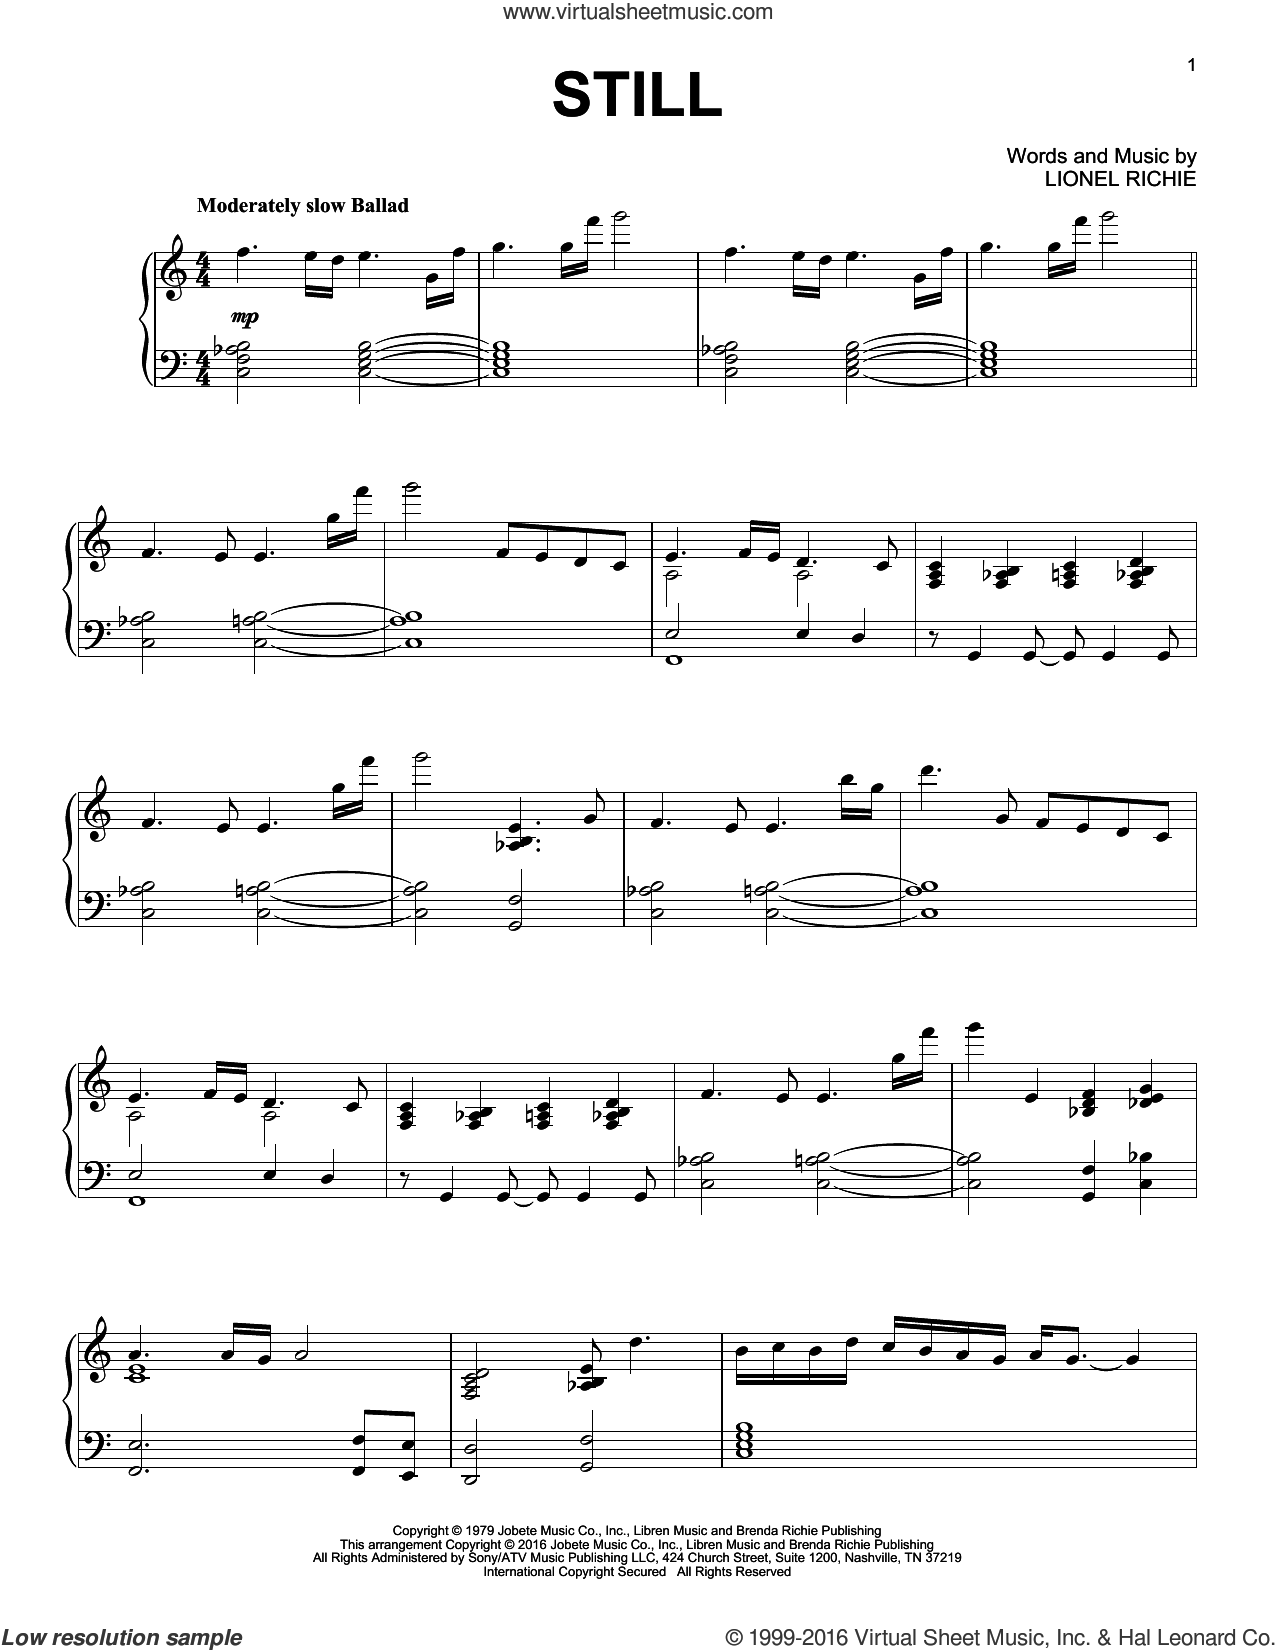 Still [Jazz version] sheet music for piano solo by The Commodores and Lionel Richie, intermediate skill level